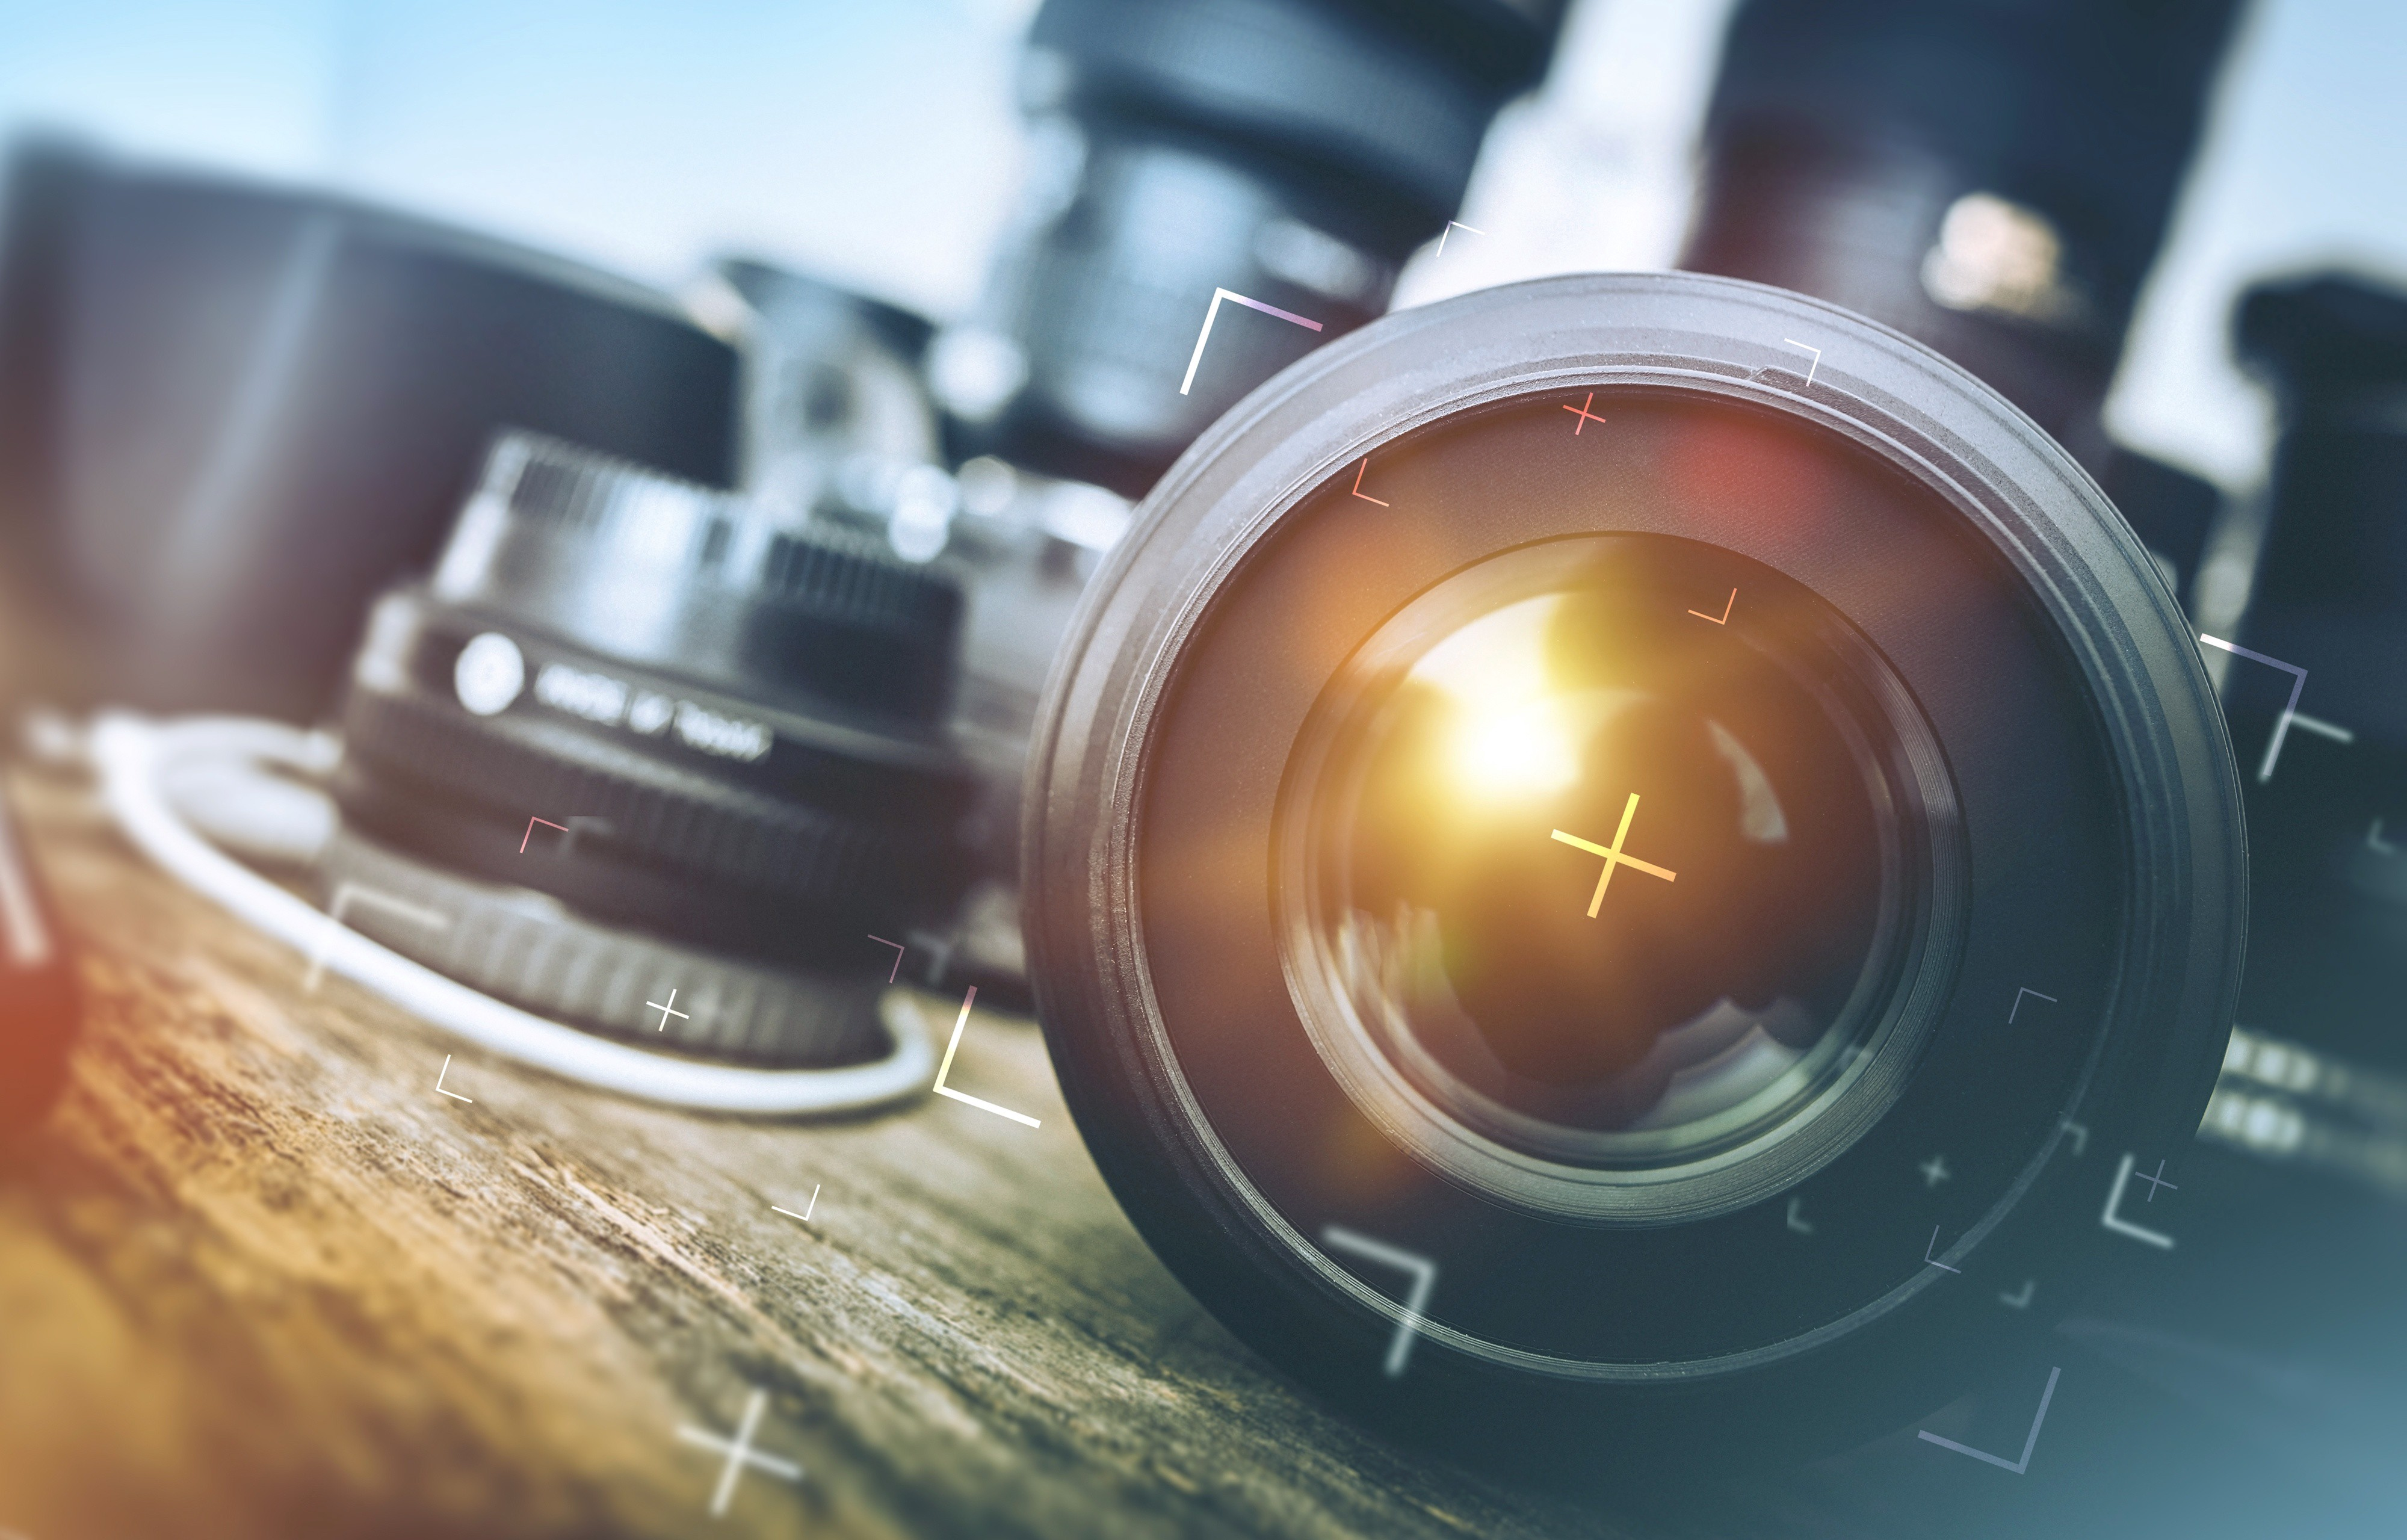 Clipart things close up and things far away clipart library download Everything you need to know about camera lenses - Haje Jan Kamps ... clipart library download